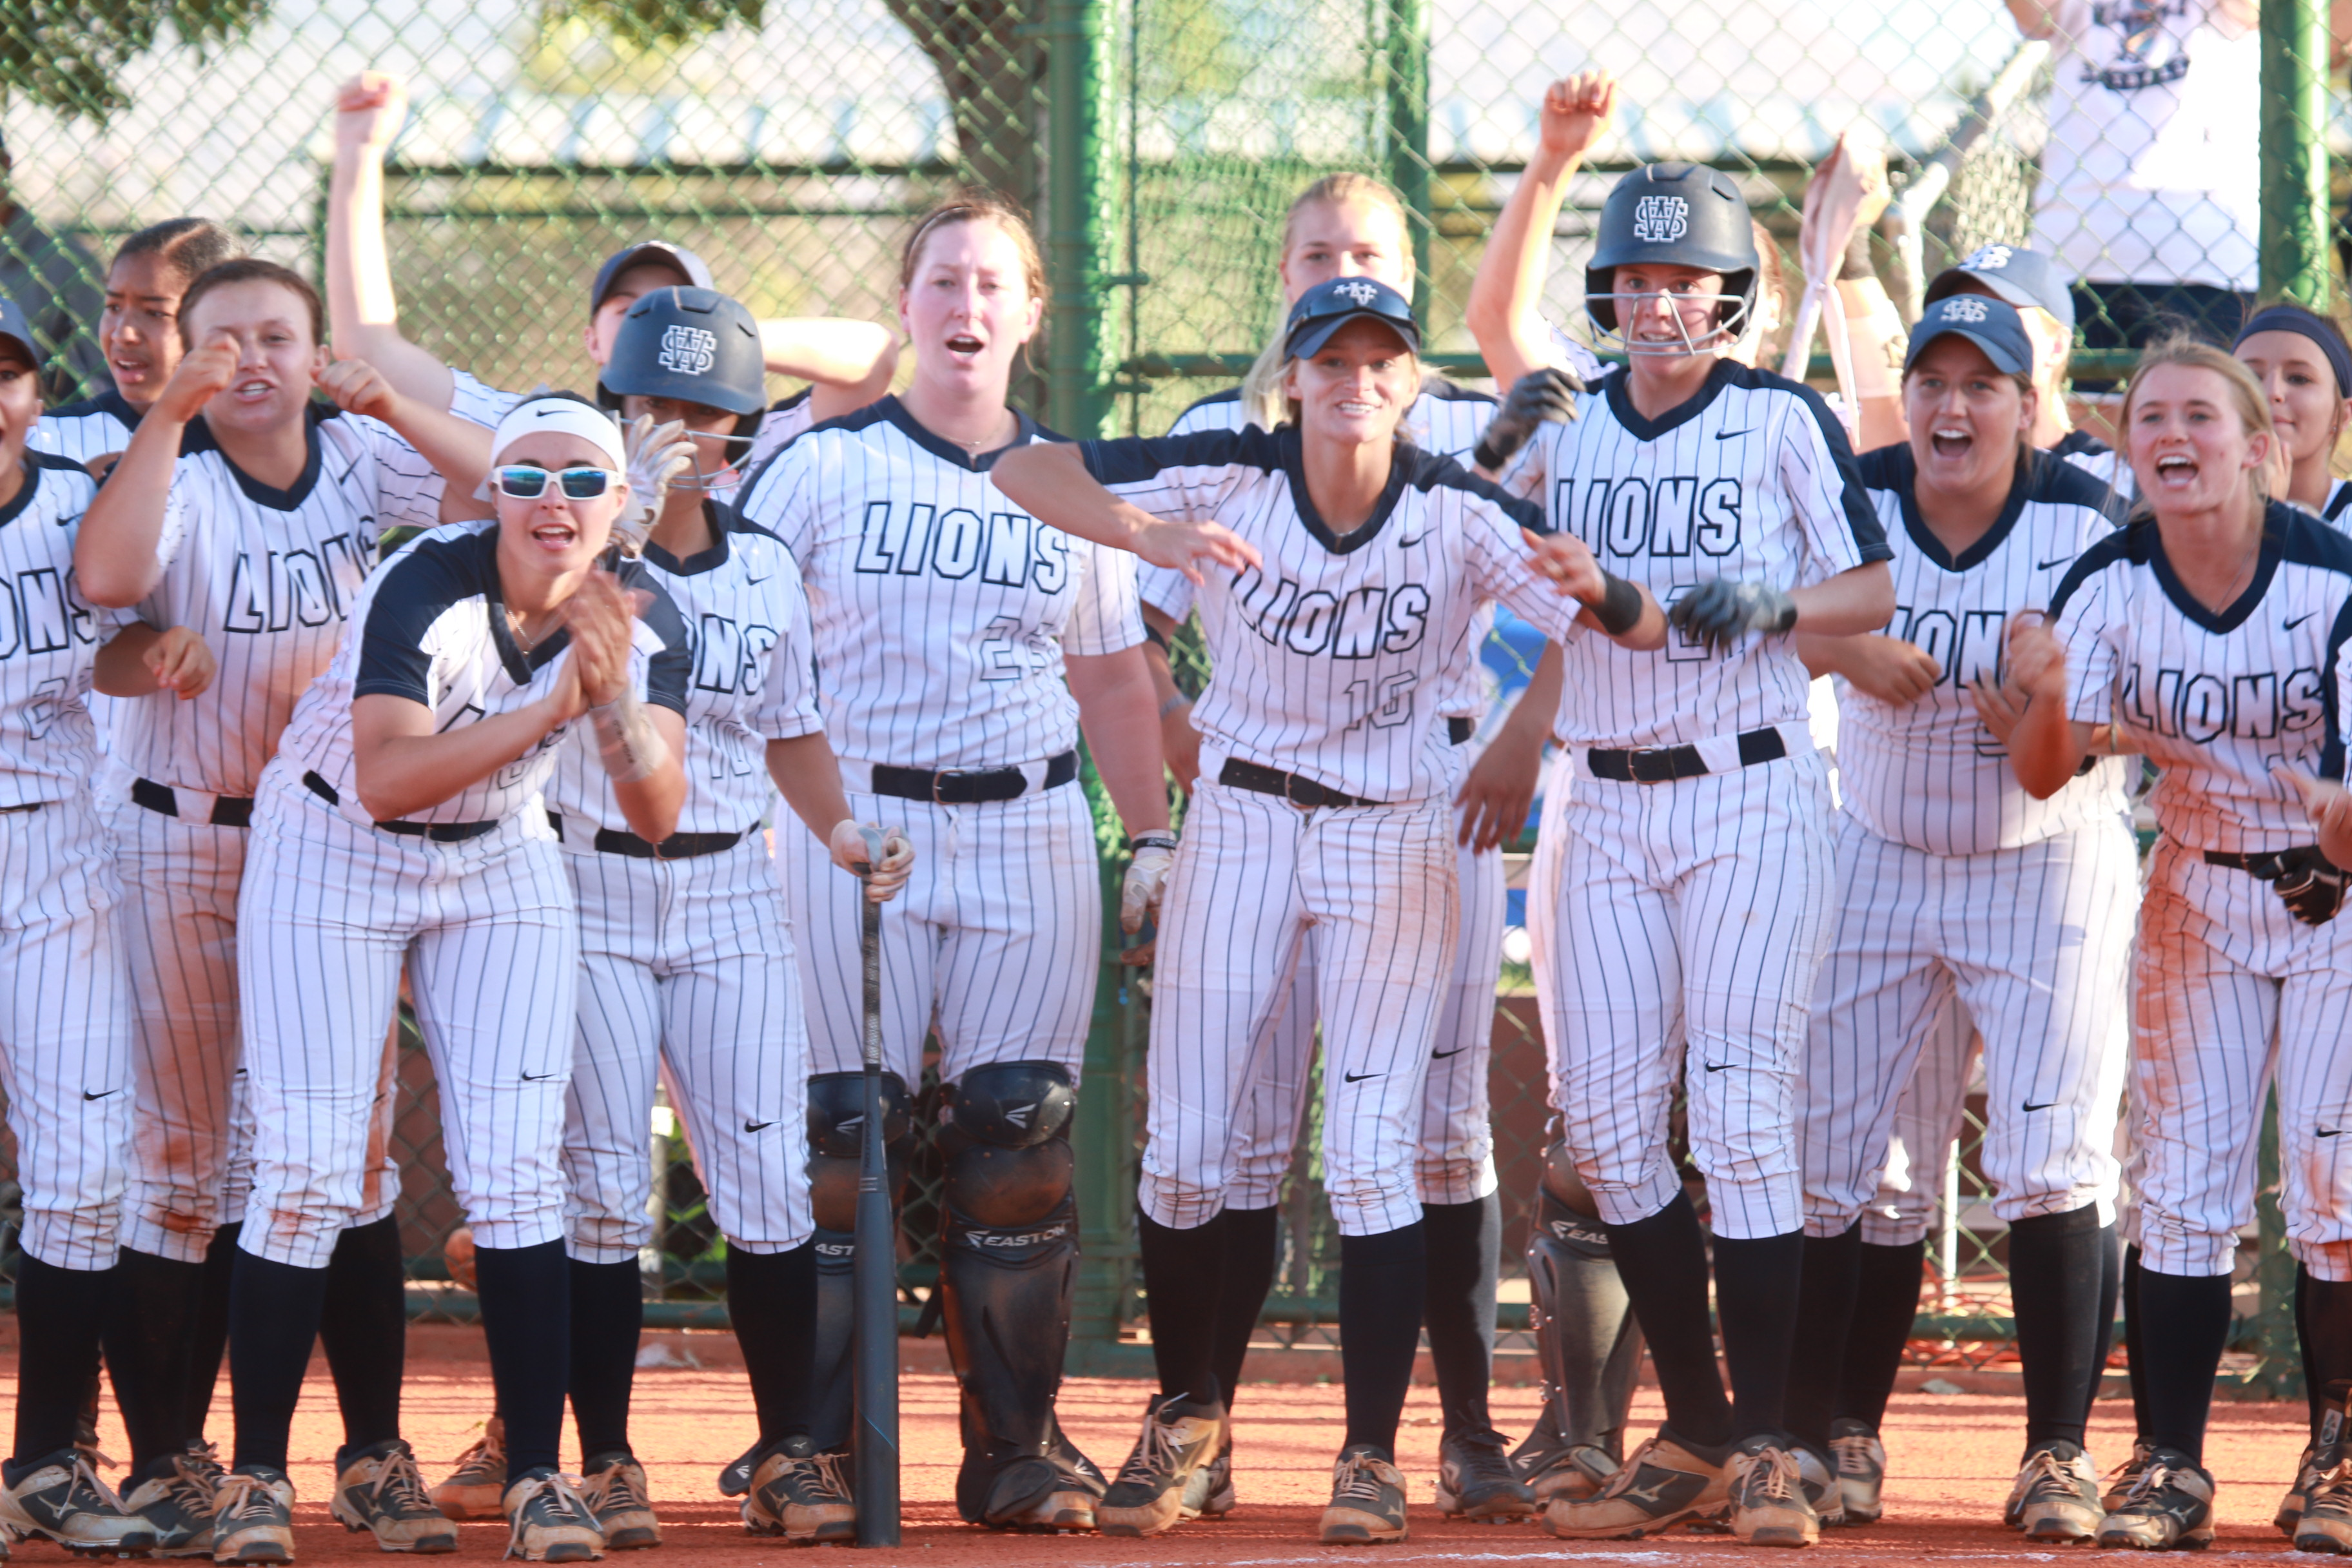 players-react-after-charlee-west-home-run.jpg